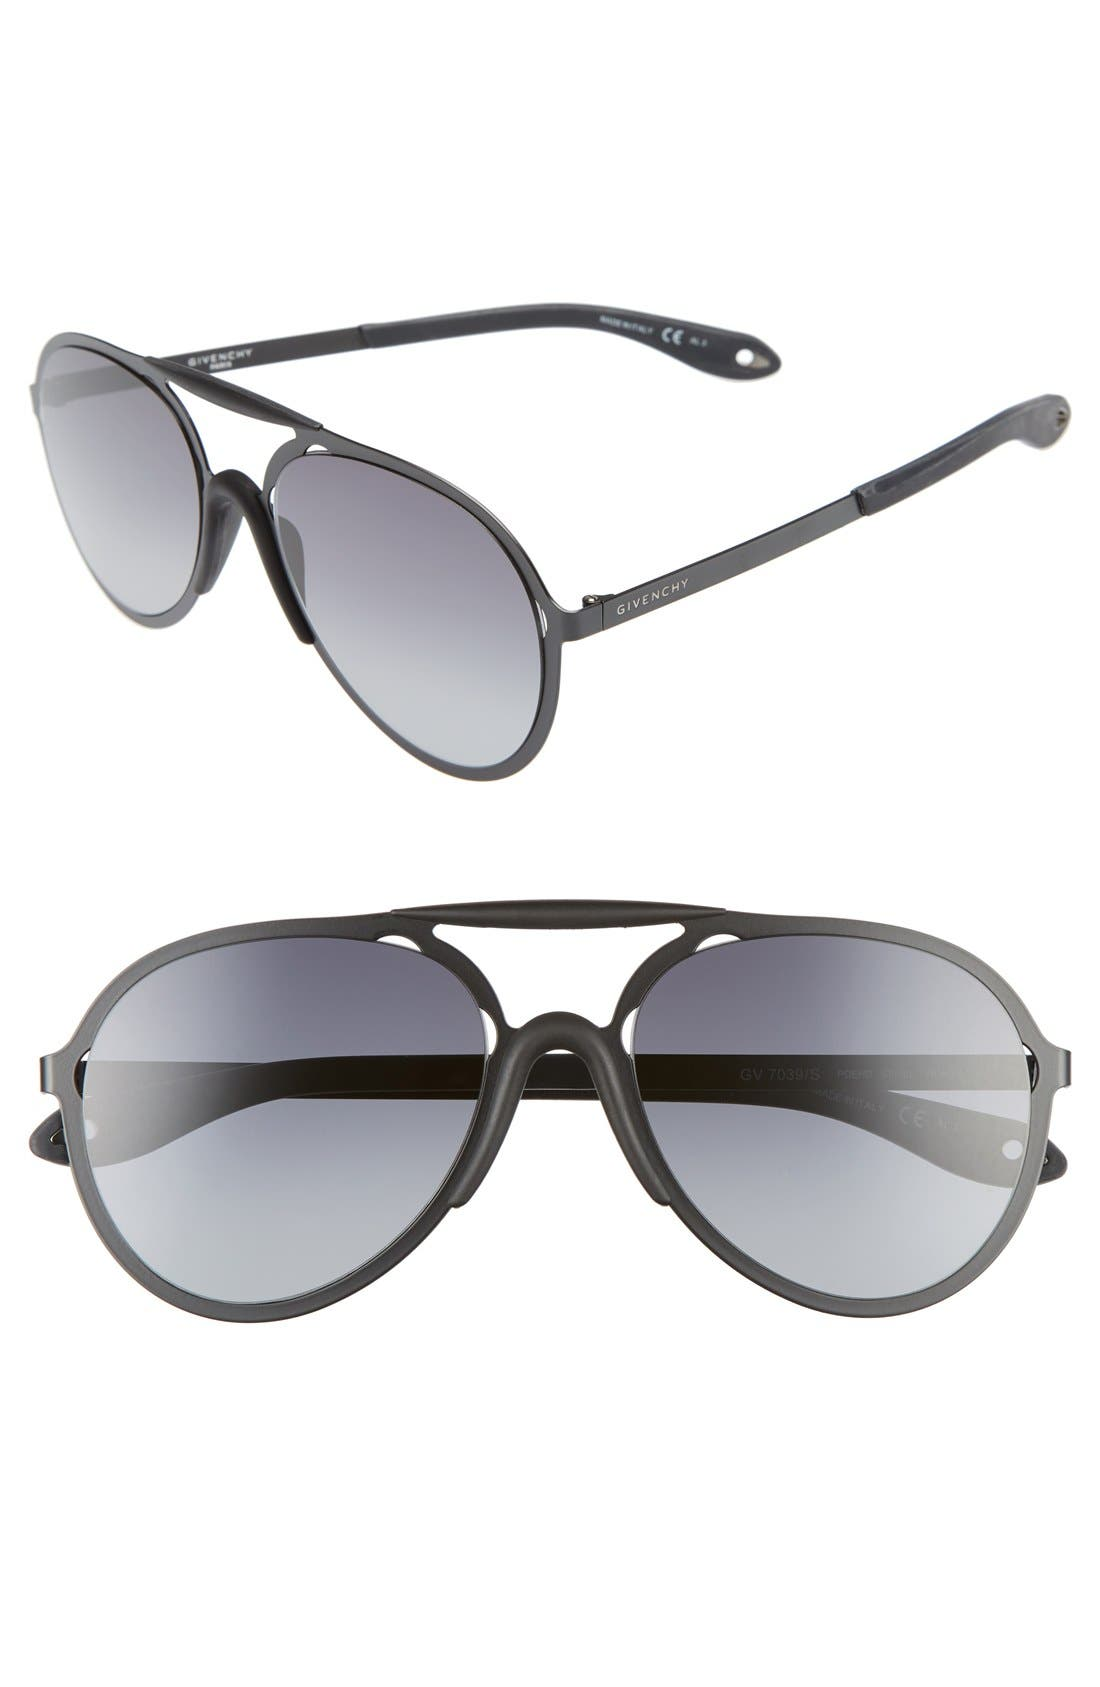 57mm Sunglasses,                         Main,                         color, BLACK/ GREY GRADIENT